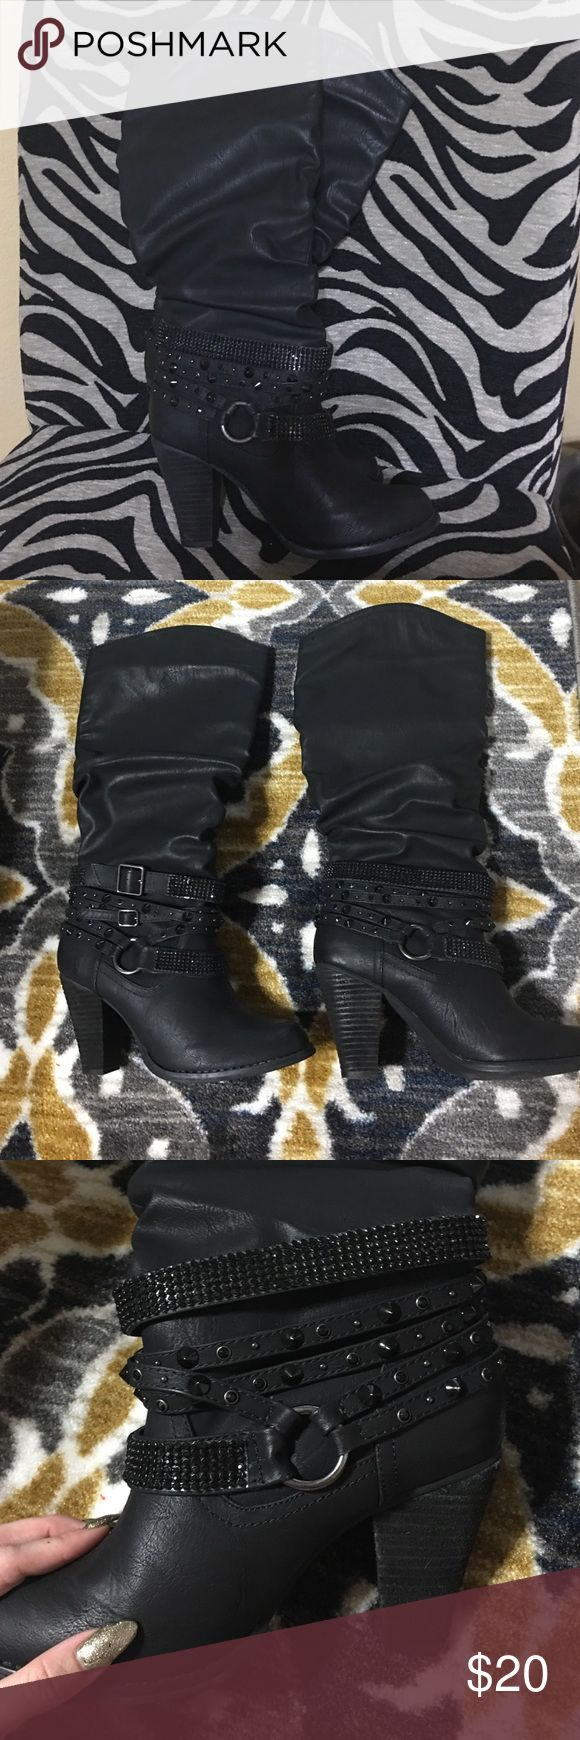 Black Knee High Boots ✨Size 9.5, woman's black high heeled, hawt boots.✨ Shoes Heeled Boots